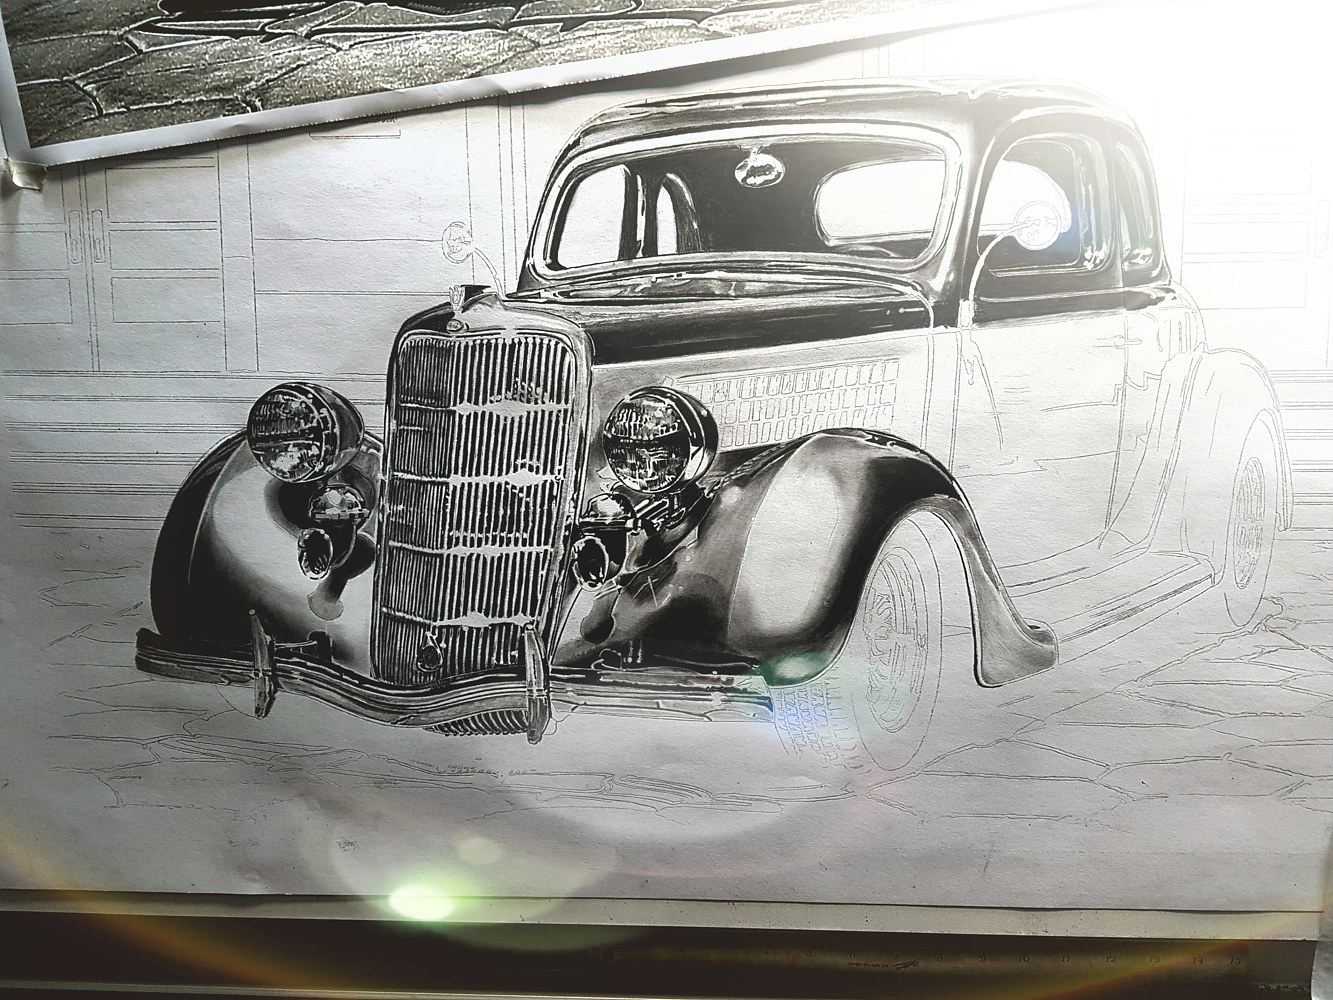 35 Ford Progress by Dave Wishart